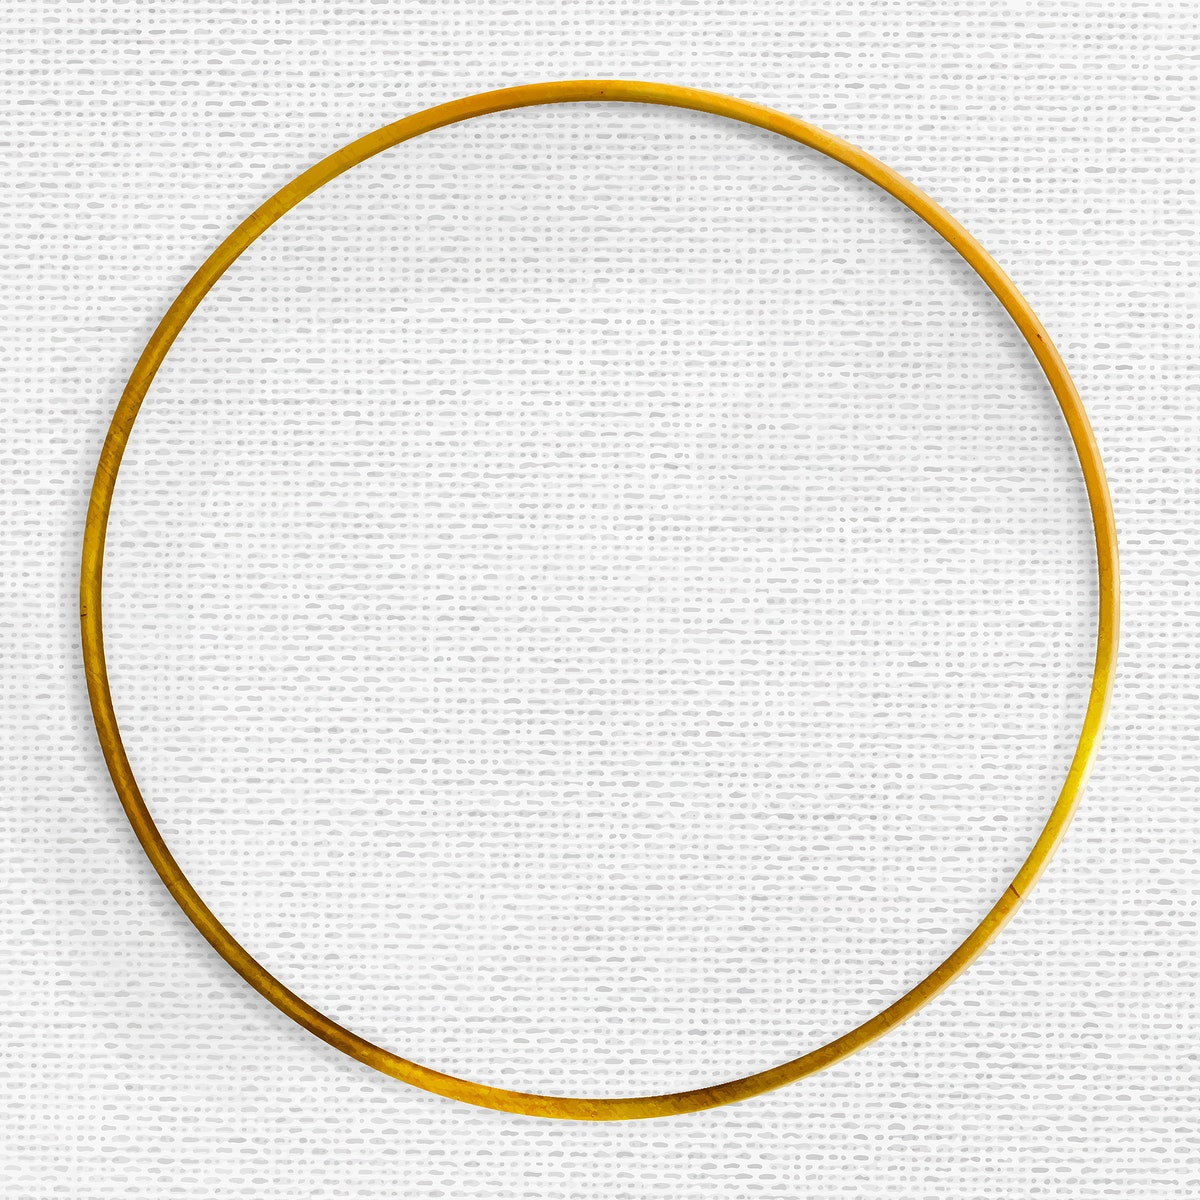 Gold frame on gray fabric textured background vector